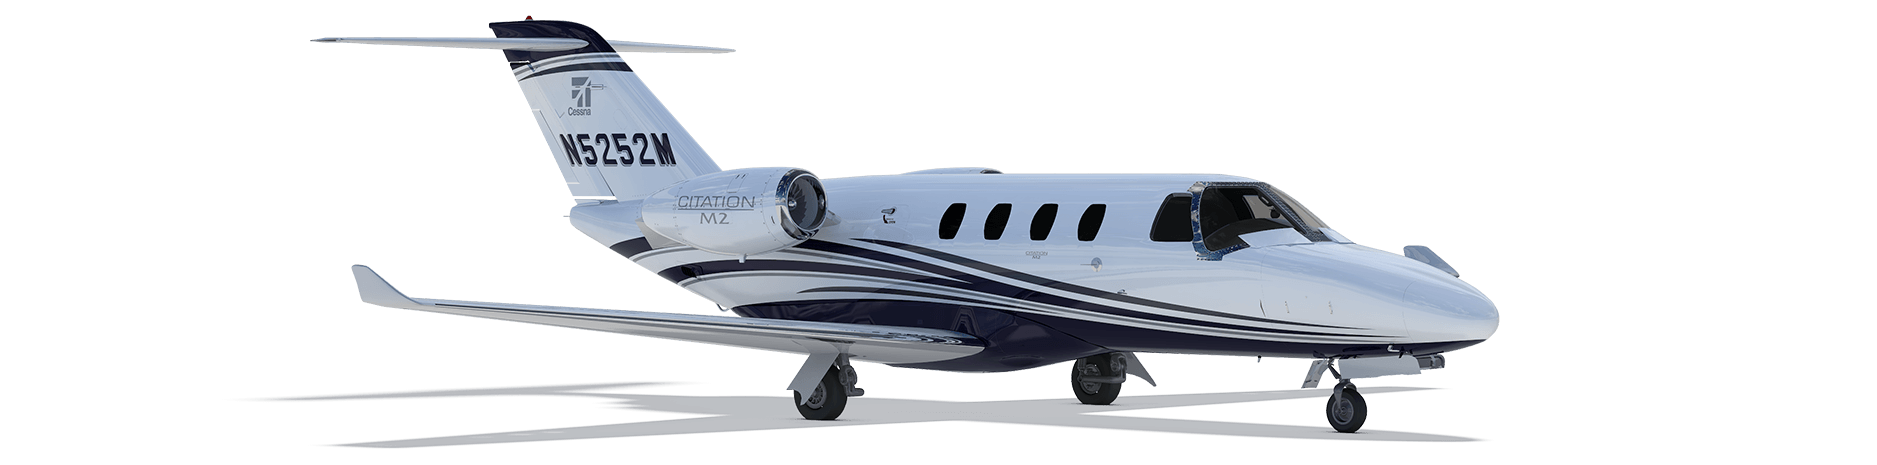 Cessna-Citation-525-6